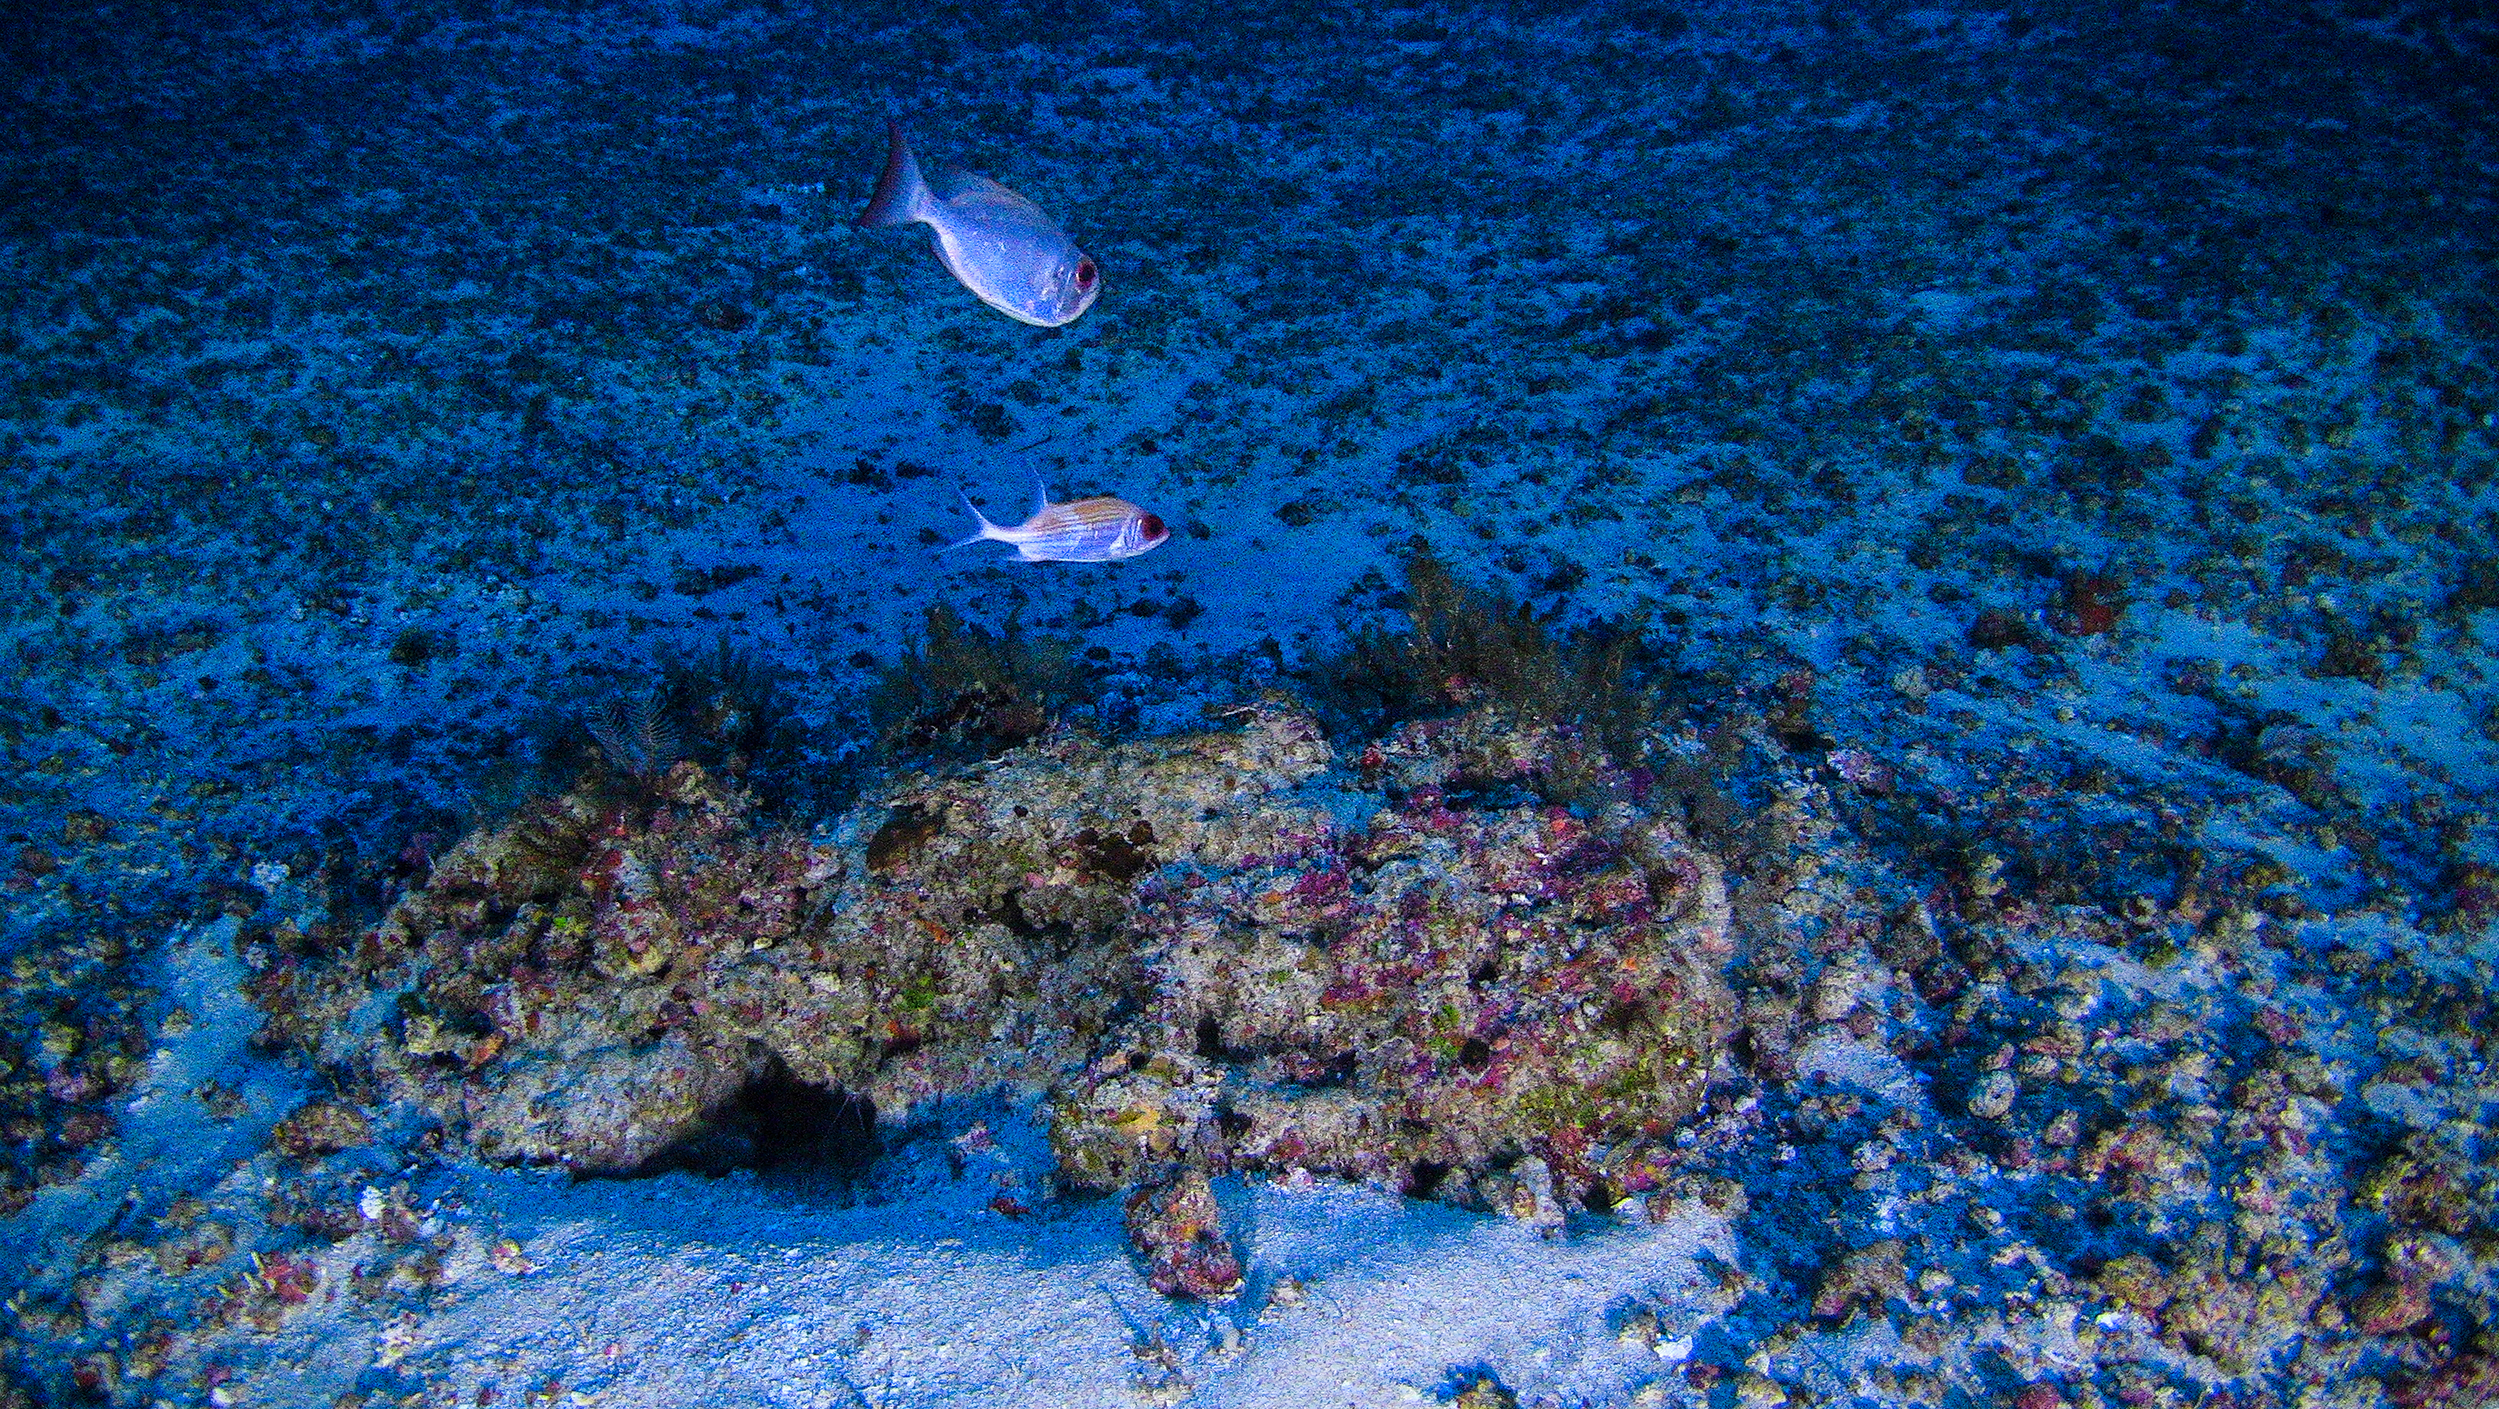 One of the first images of the Amazon Reef taken from a submarine launched from the Greenpeace Esperanza ship in 2017 © Greenpeace